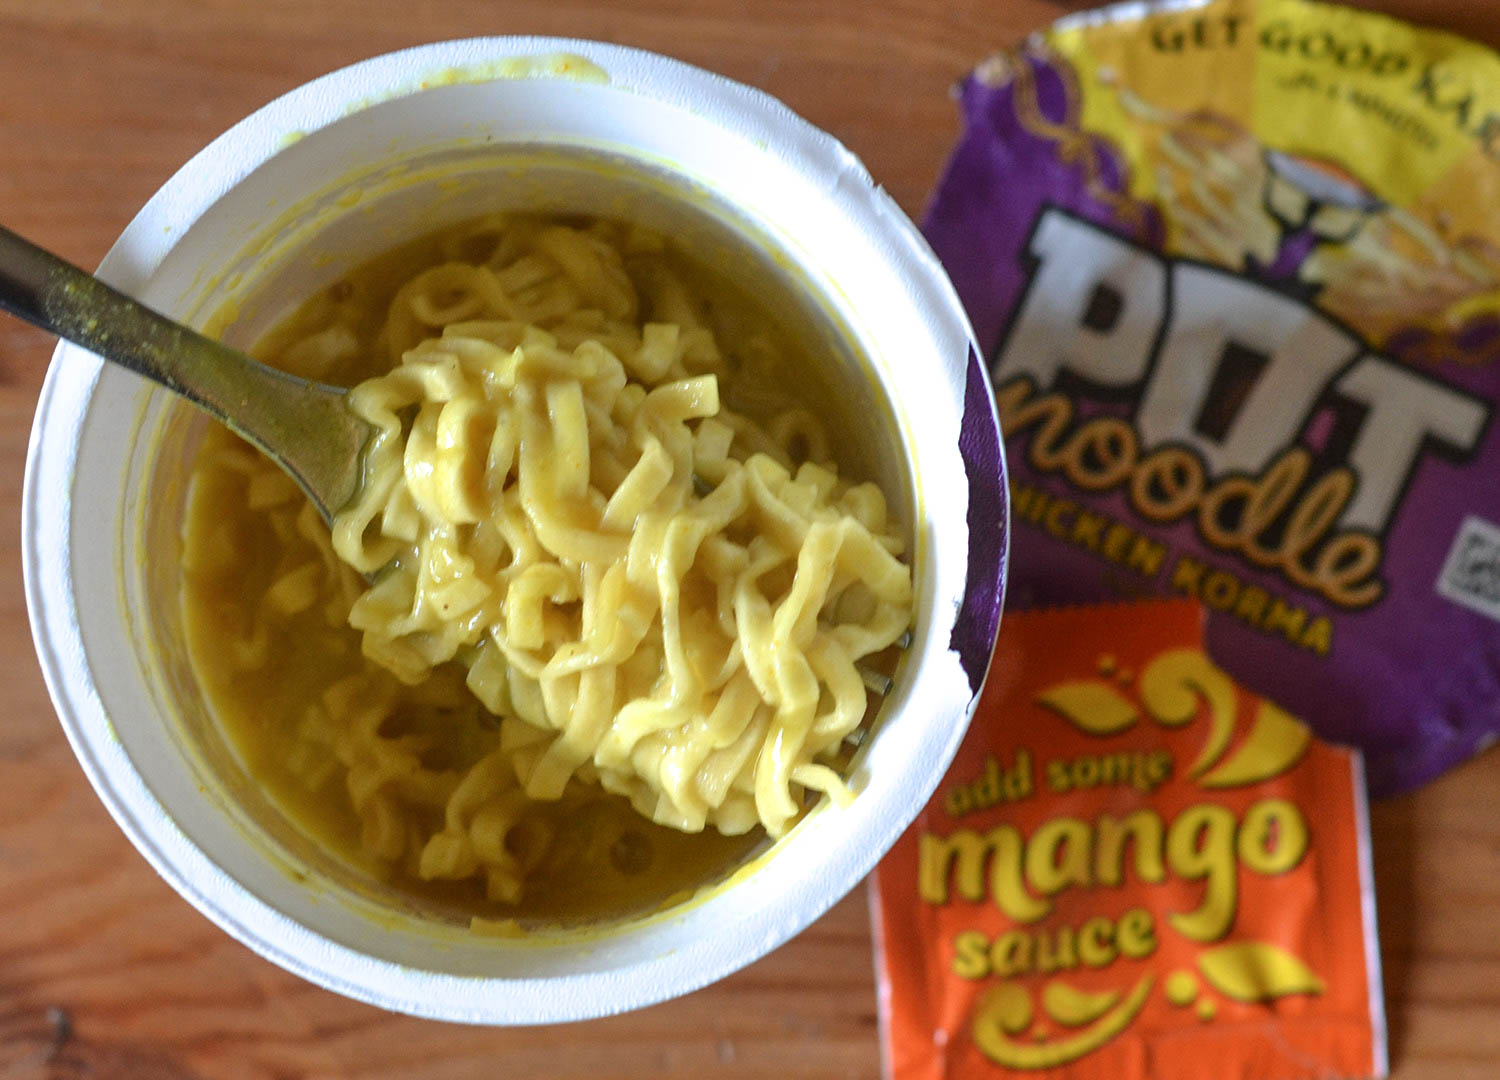 Britains Best Ramen Noodle Pots. Golden Wonder Pot Noodles